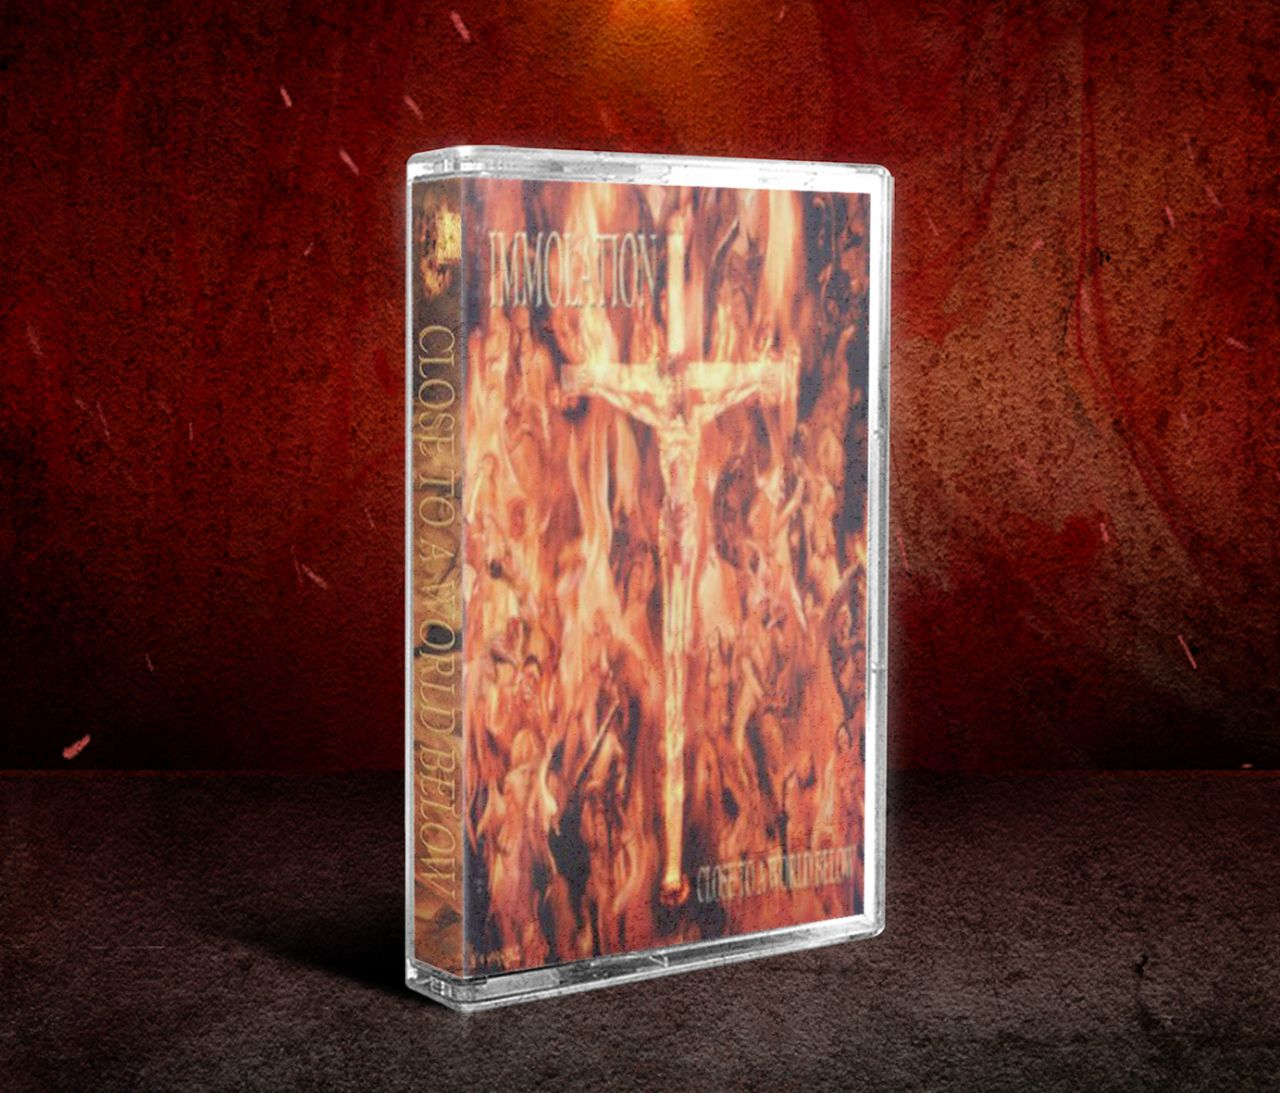 Image of IMMOLATION - Here In After - Failures For God's - Close To A World Below